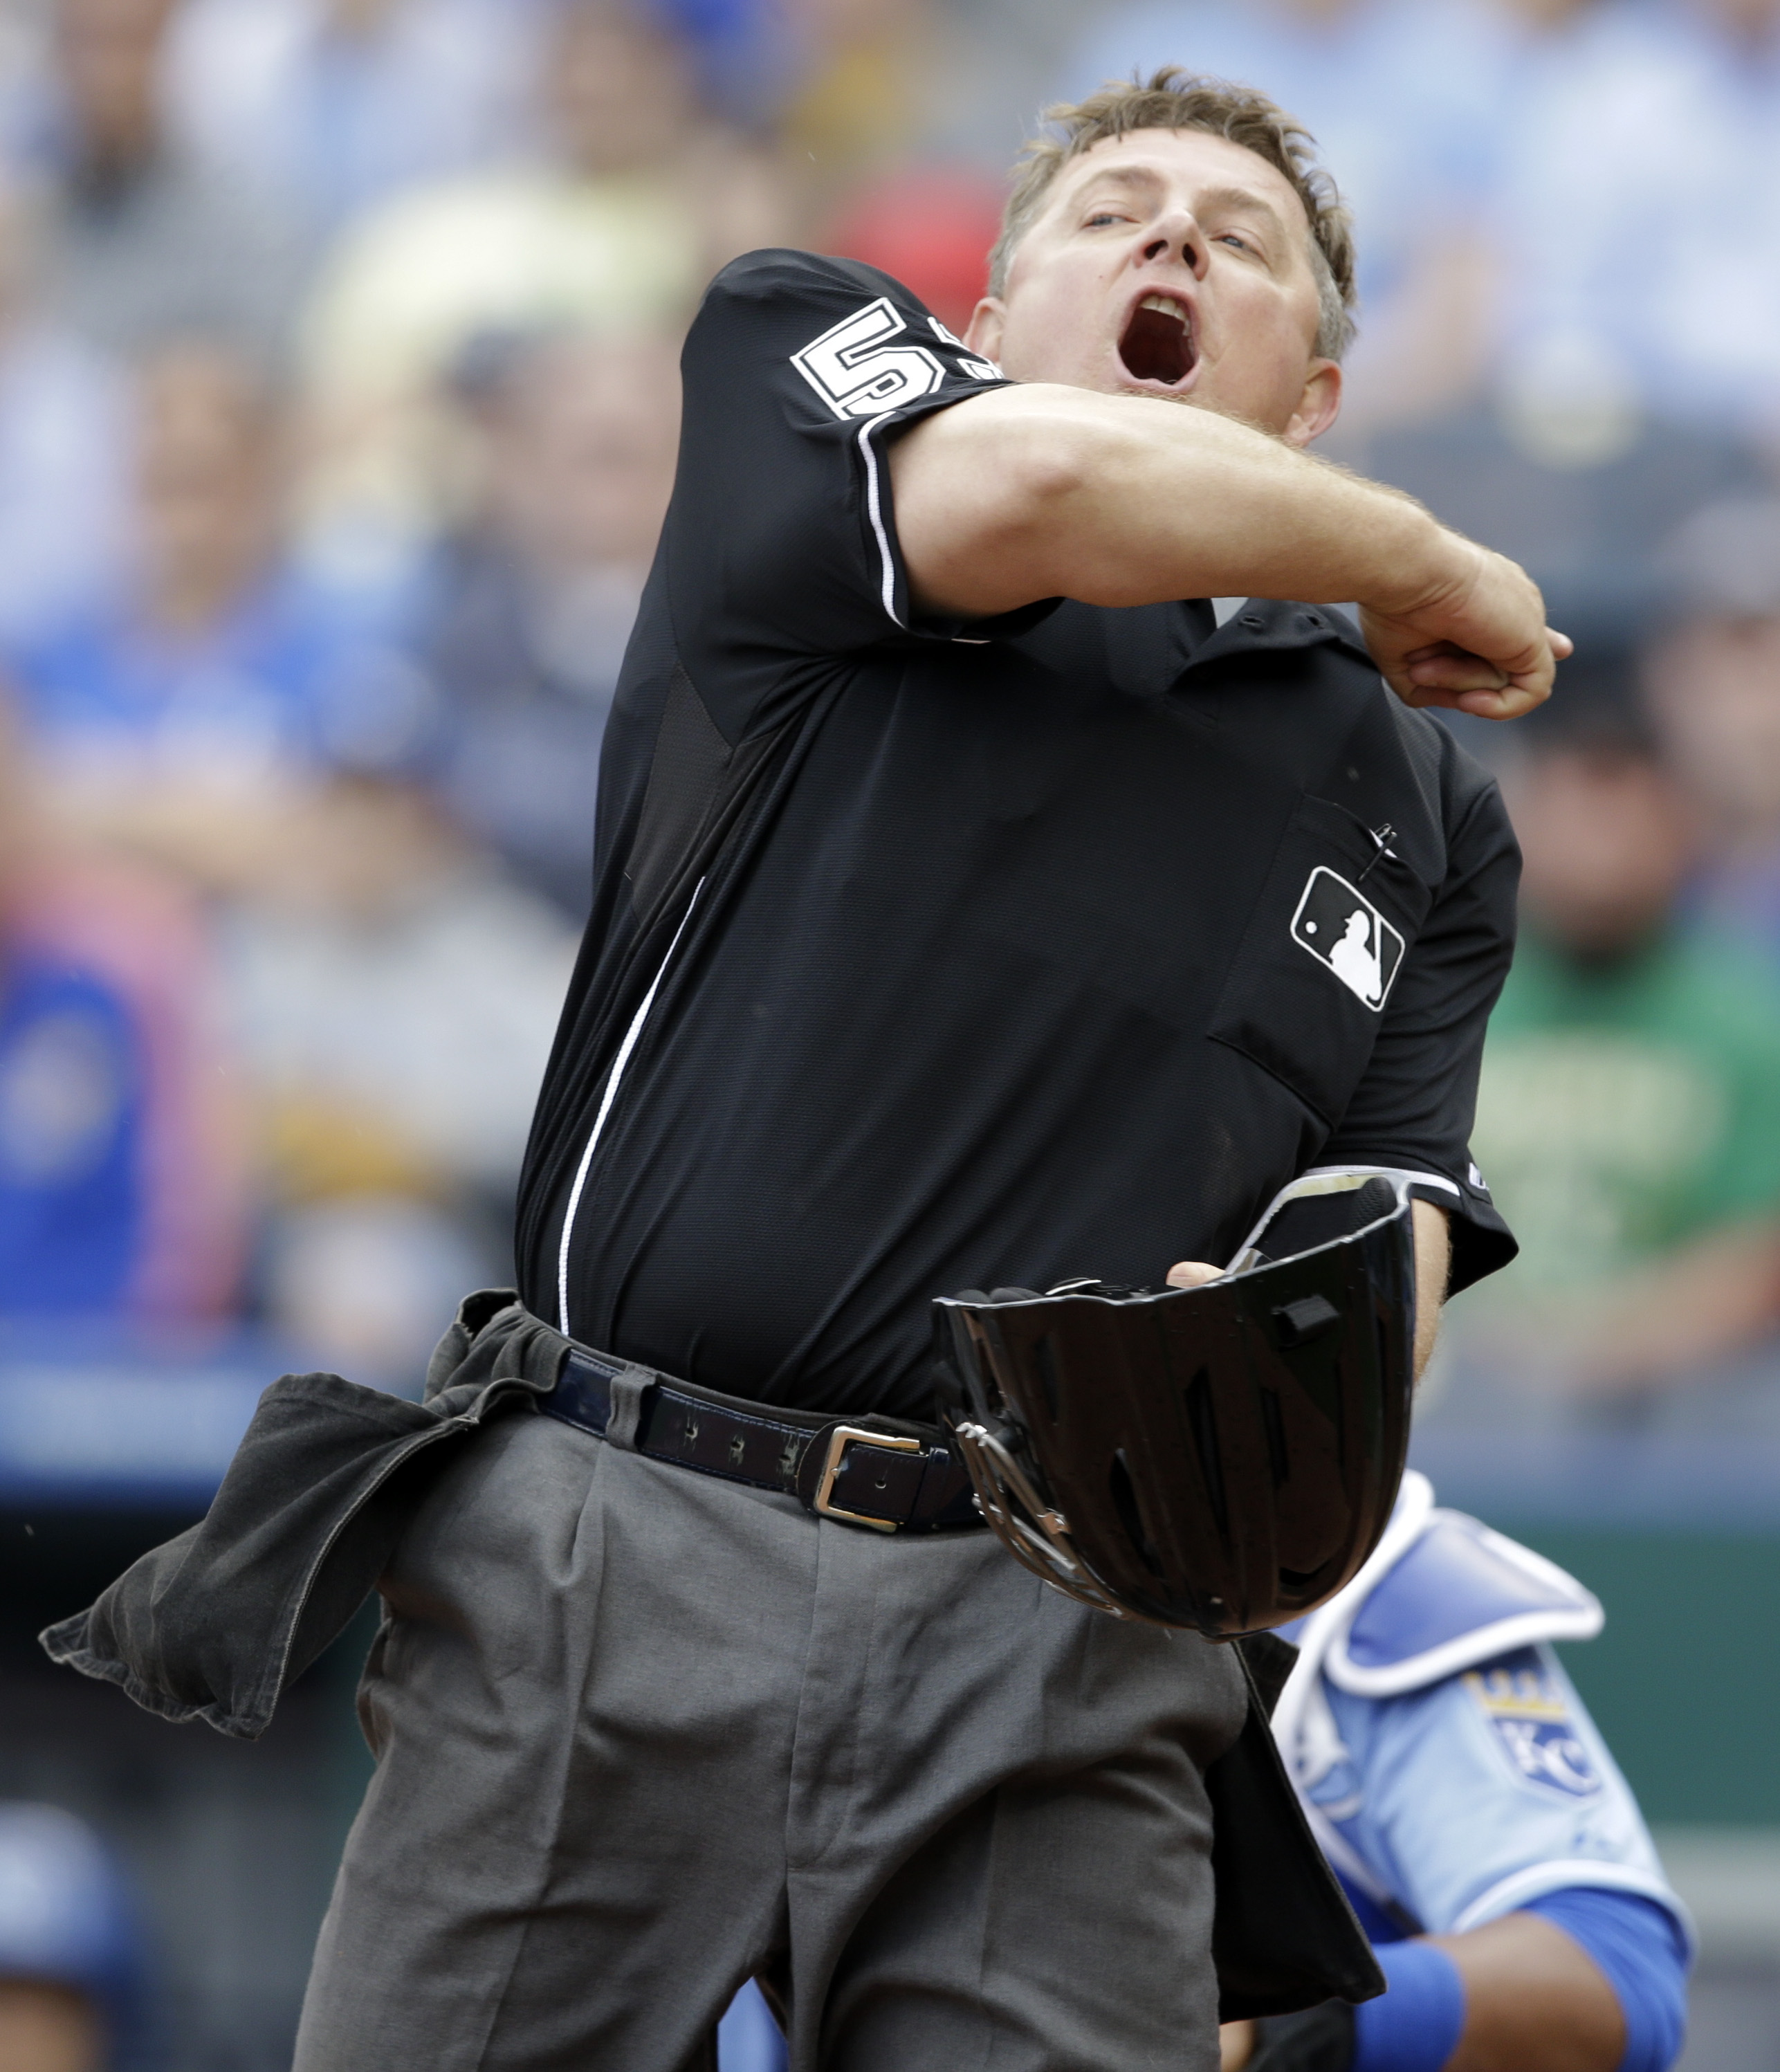 Home plate umpire Greg Gibson (53) throws Kansas City Royals relief pitcher Kelvin Herrera out during the eighth inning of a baseball game against the Oakland Athletics at Kauffman Stadium in Kansas City, Mo., Sunday, April 19, 2015. Herrera threw at Oakl